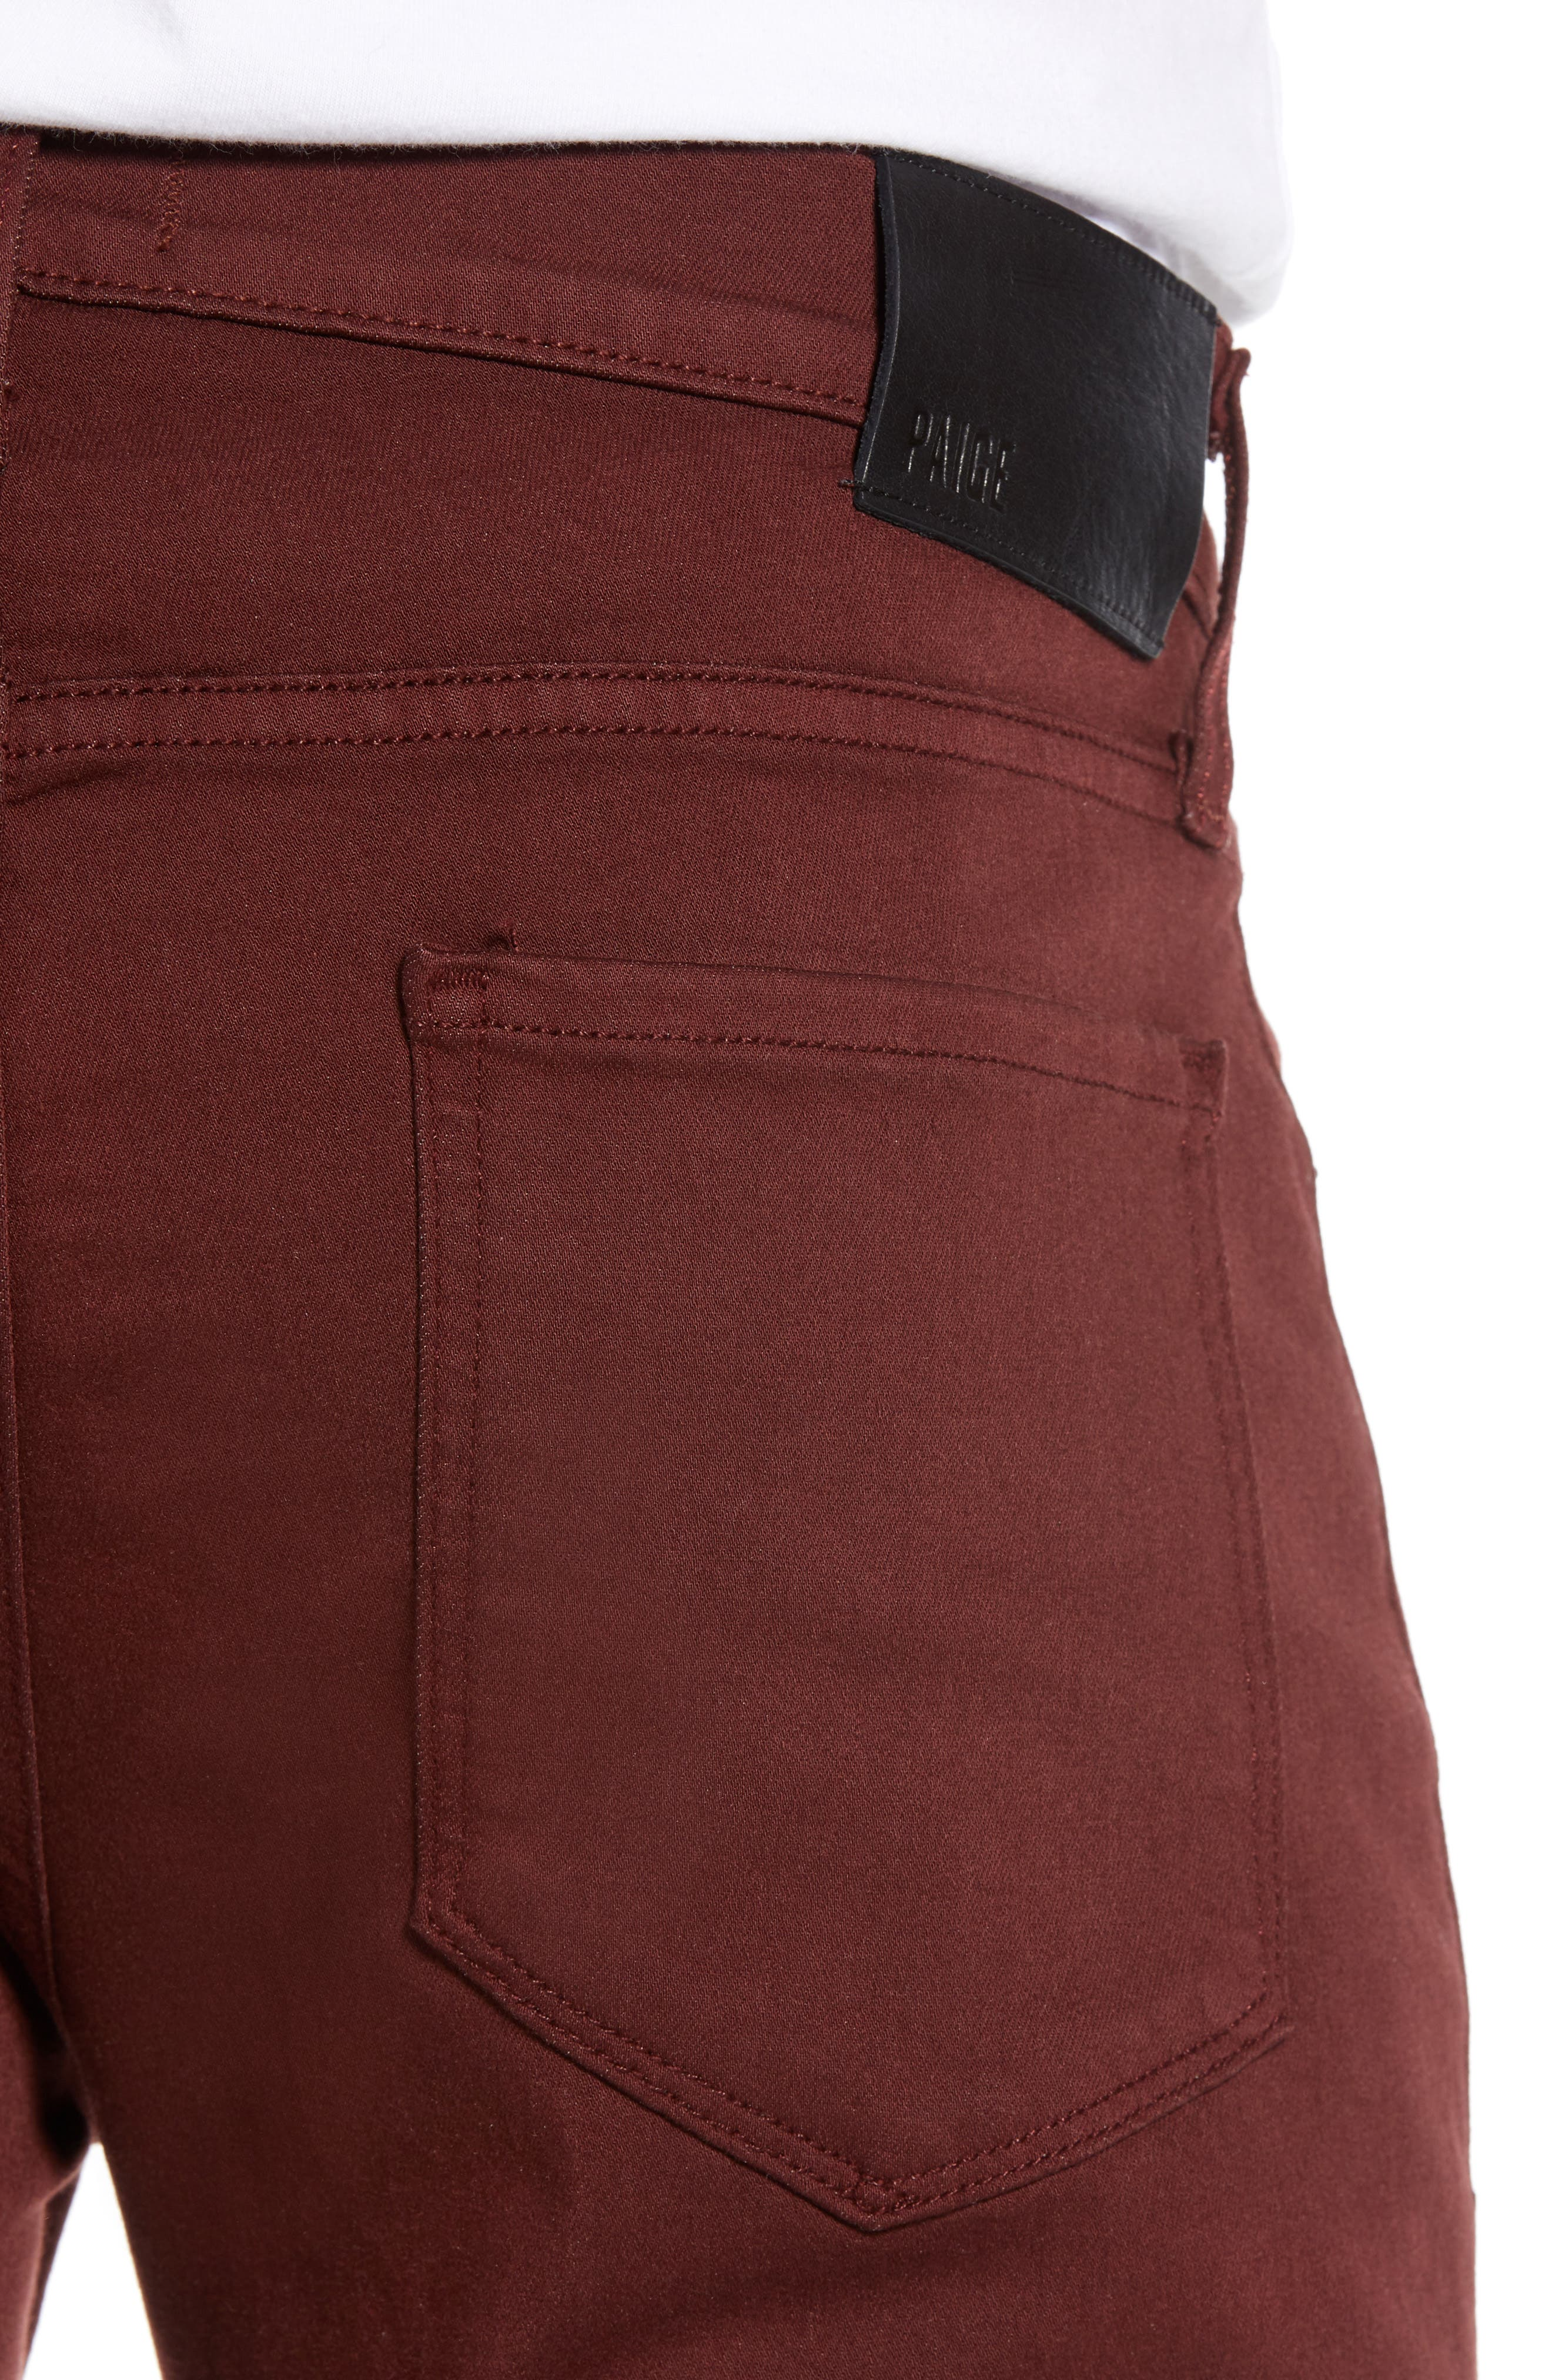 Transcend - Federal Slim Straight Leg Jeans,                             Alternate thumbnail 4, color,                             RUSTIC WINE